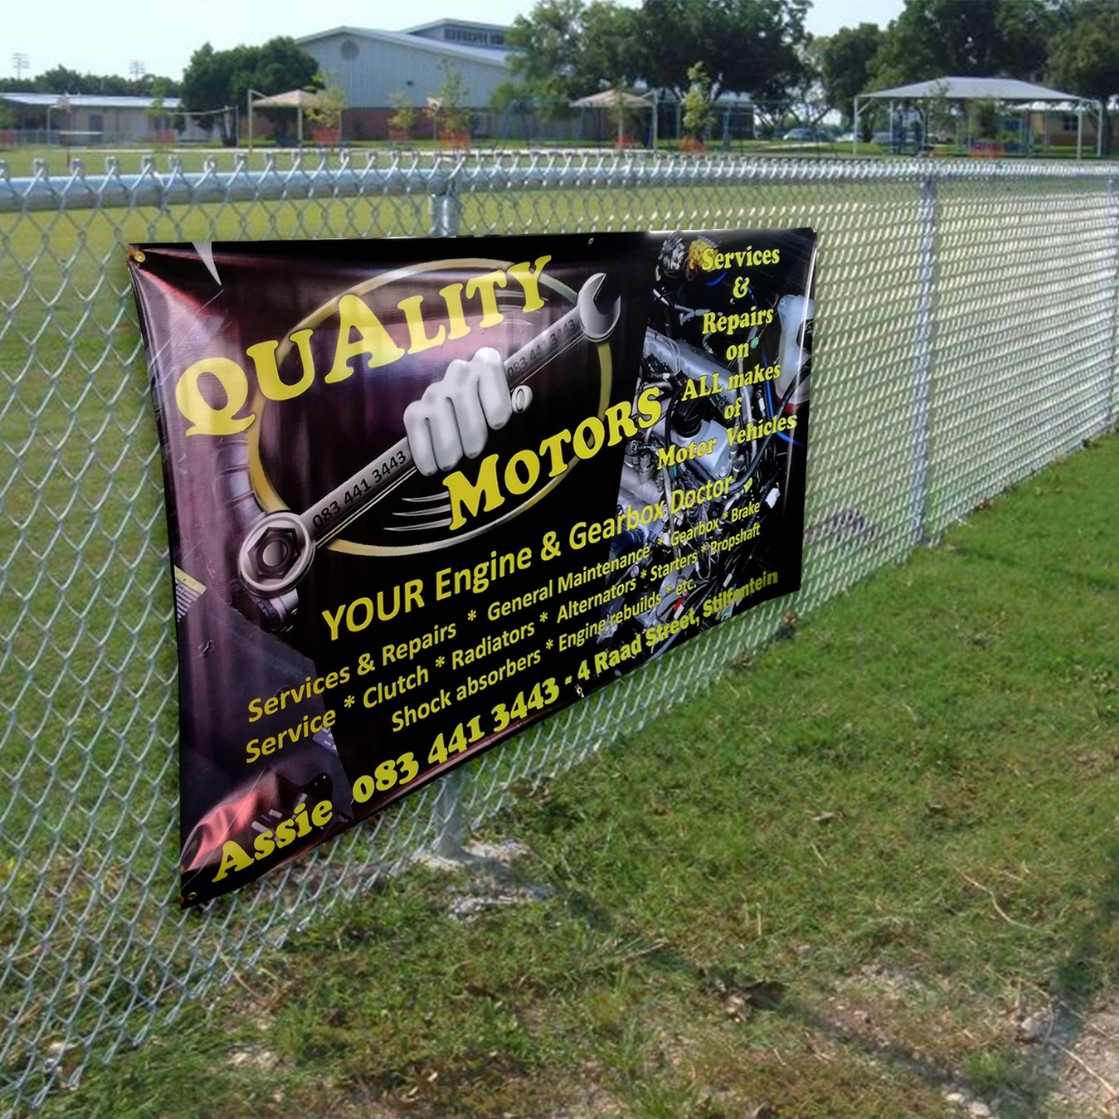 Fence wraps and PVC banners sold at below market related prices.